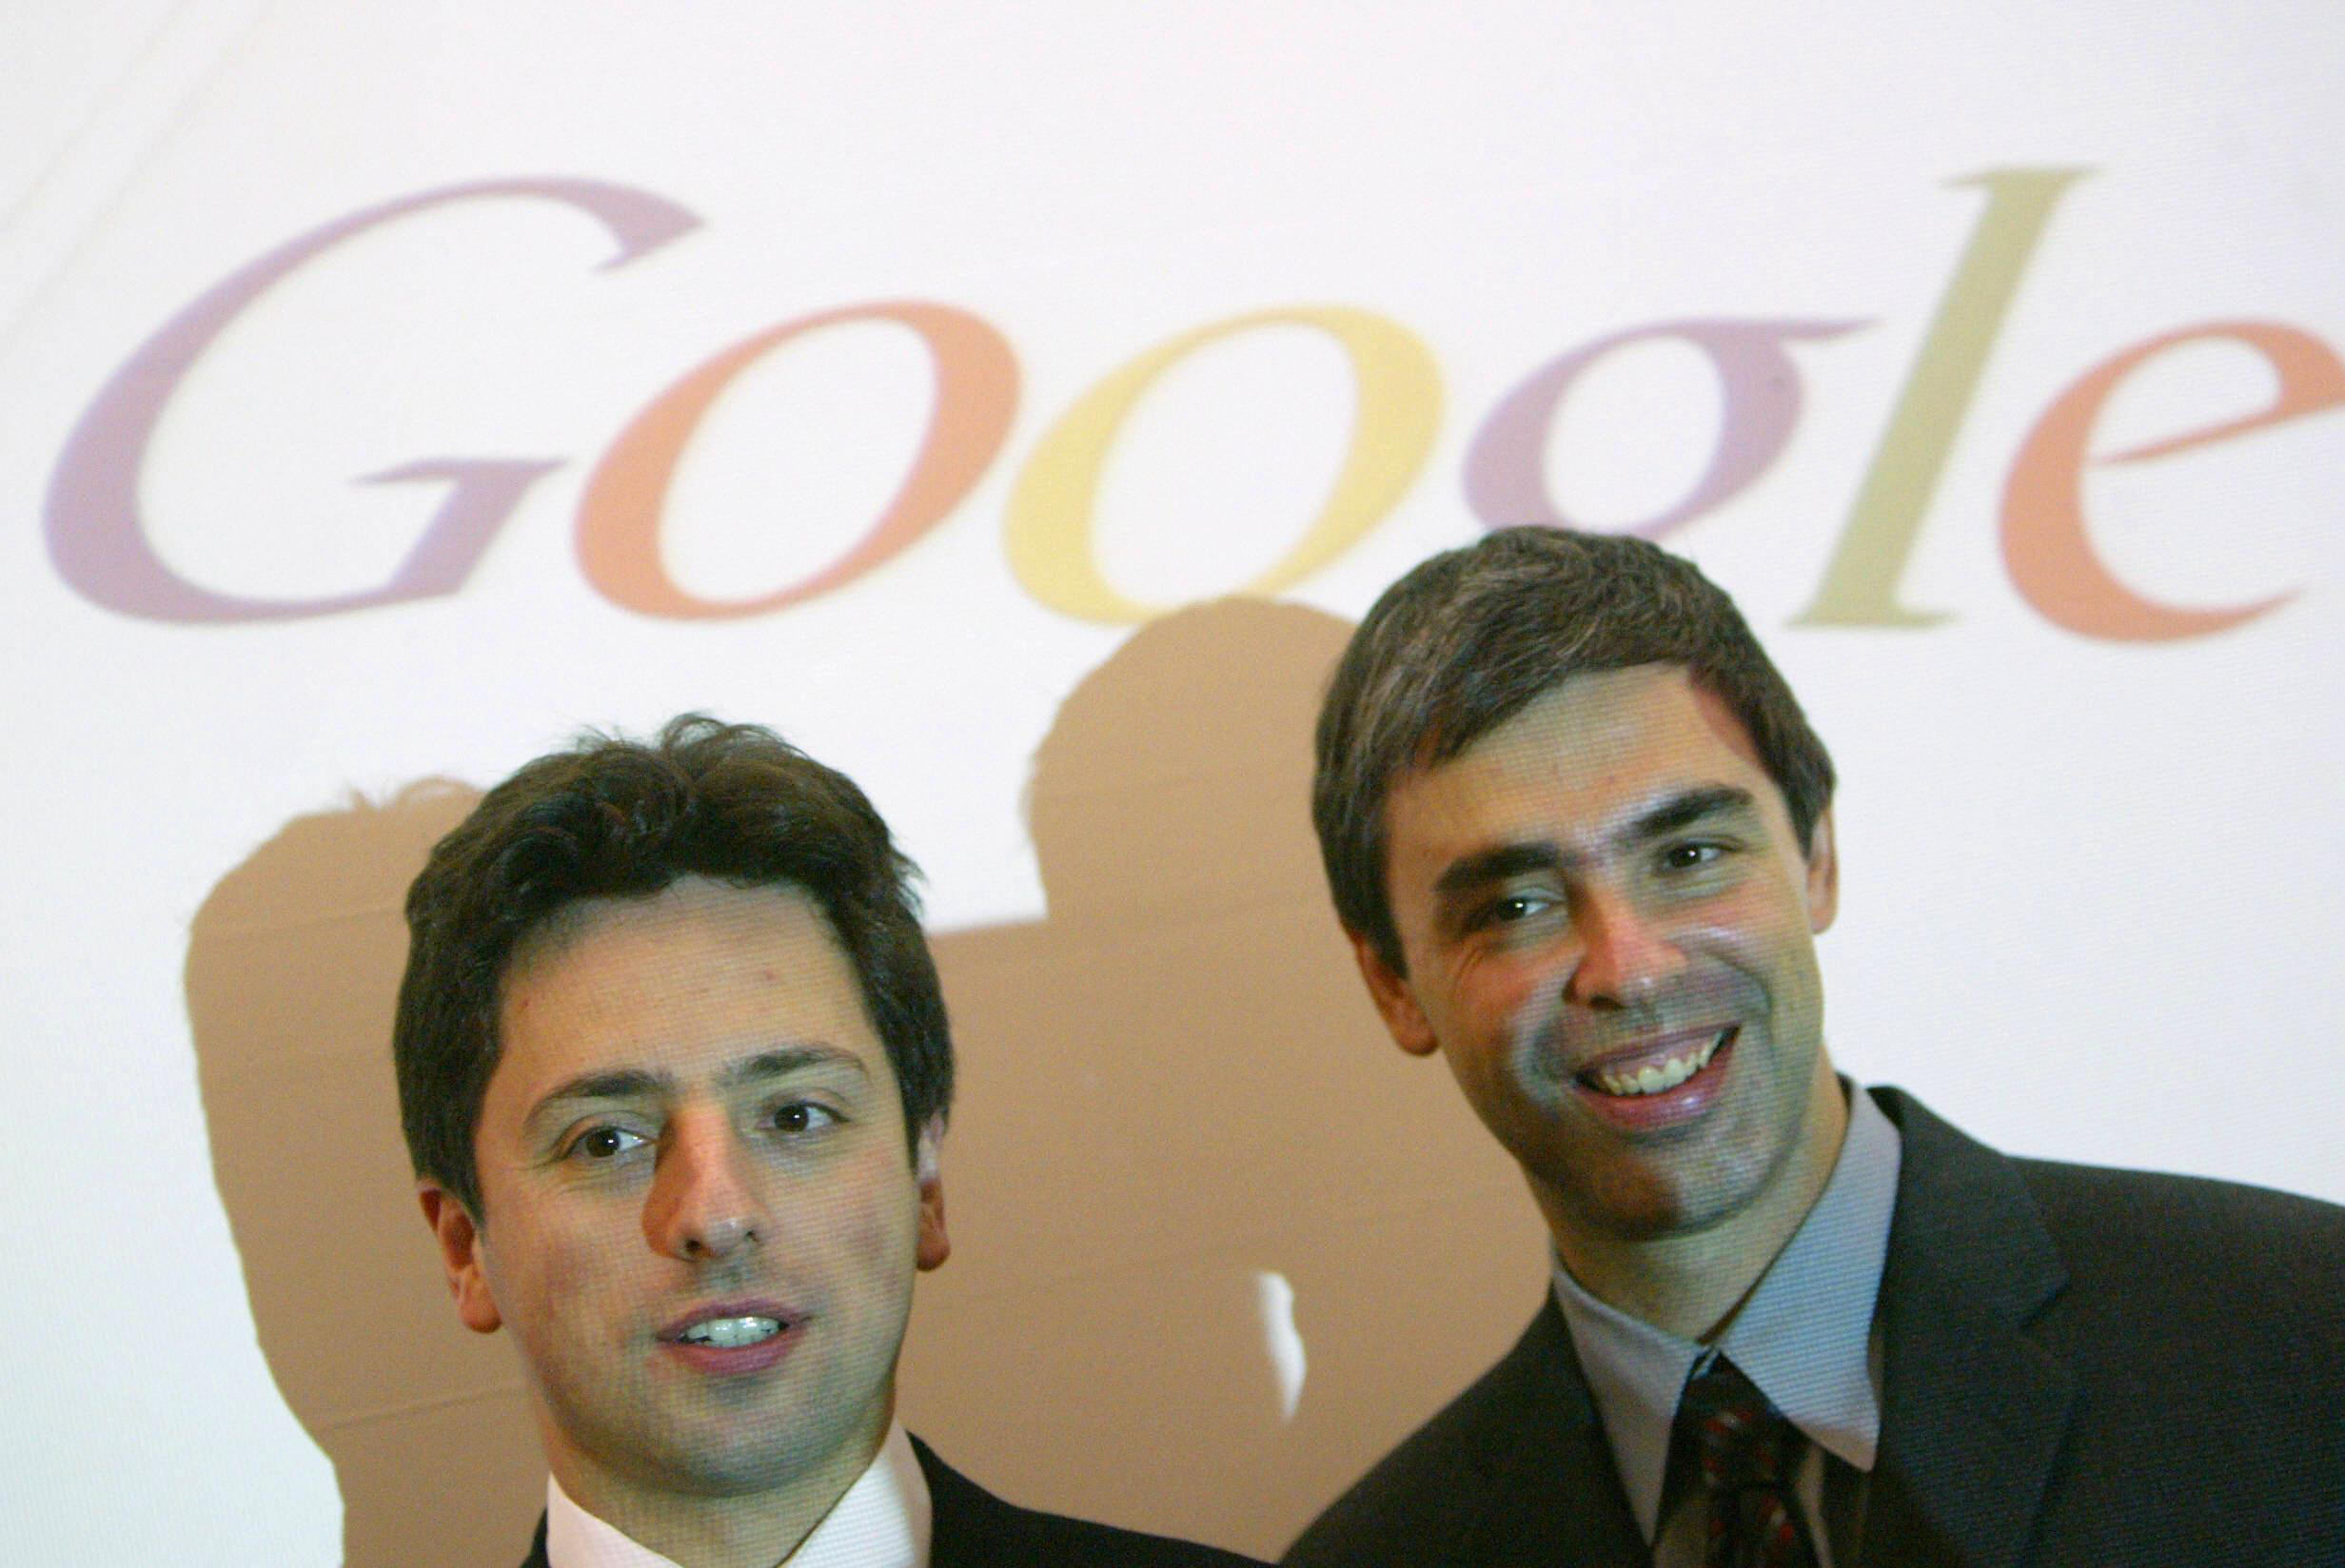 Google founders Sergey Brin (L) and Larr